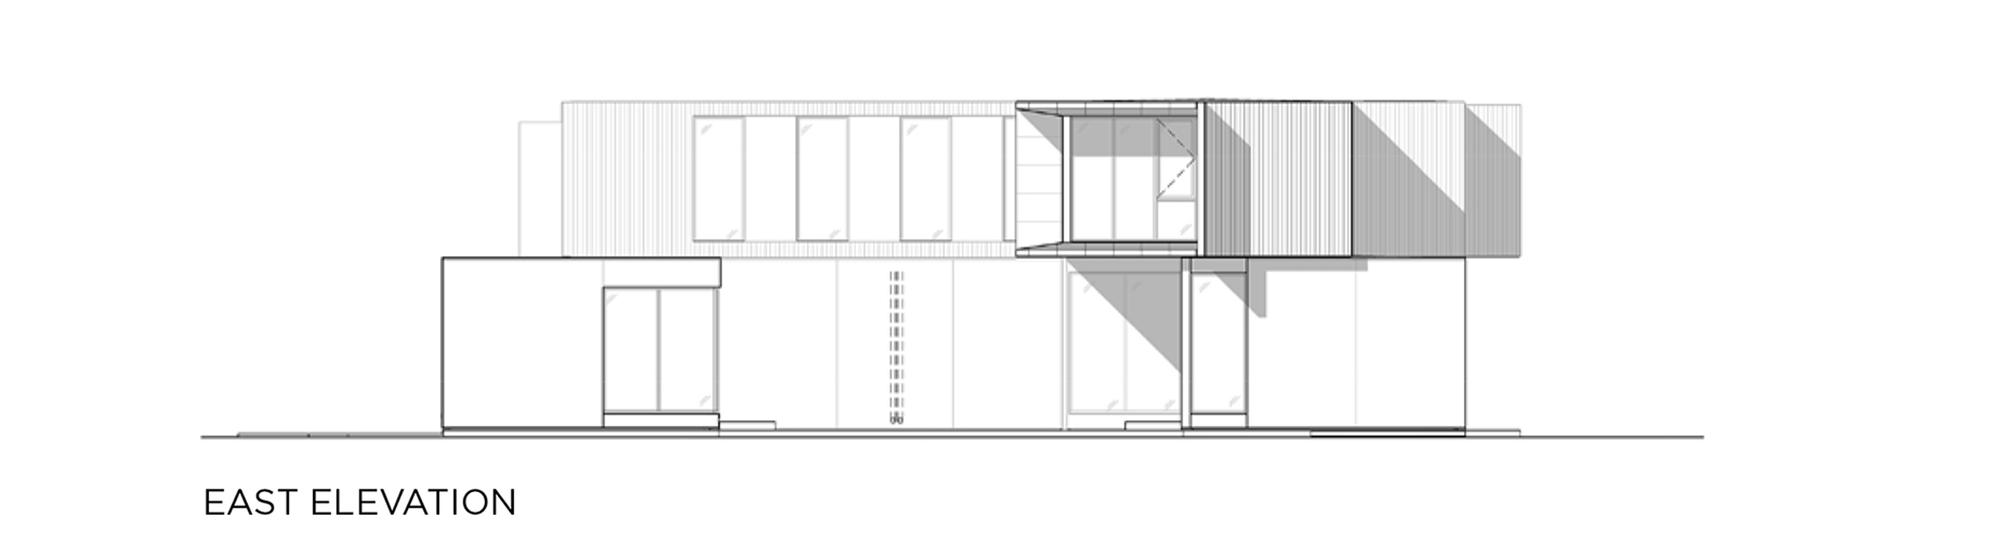 baulinder-haus-hufft-projects_east_elevation